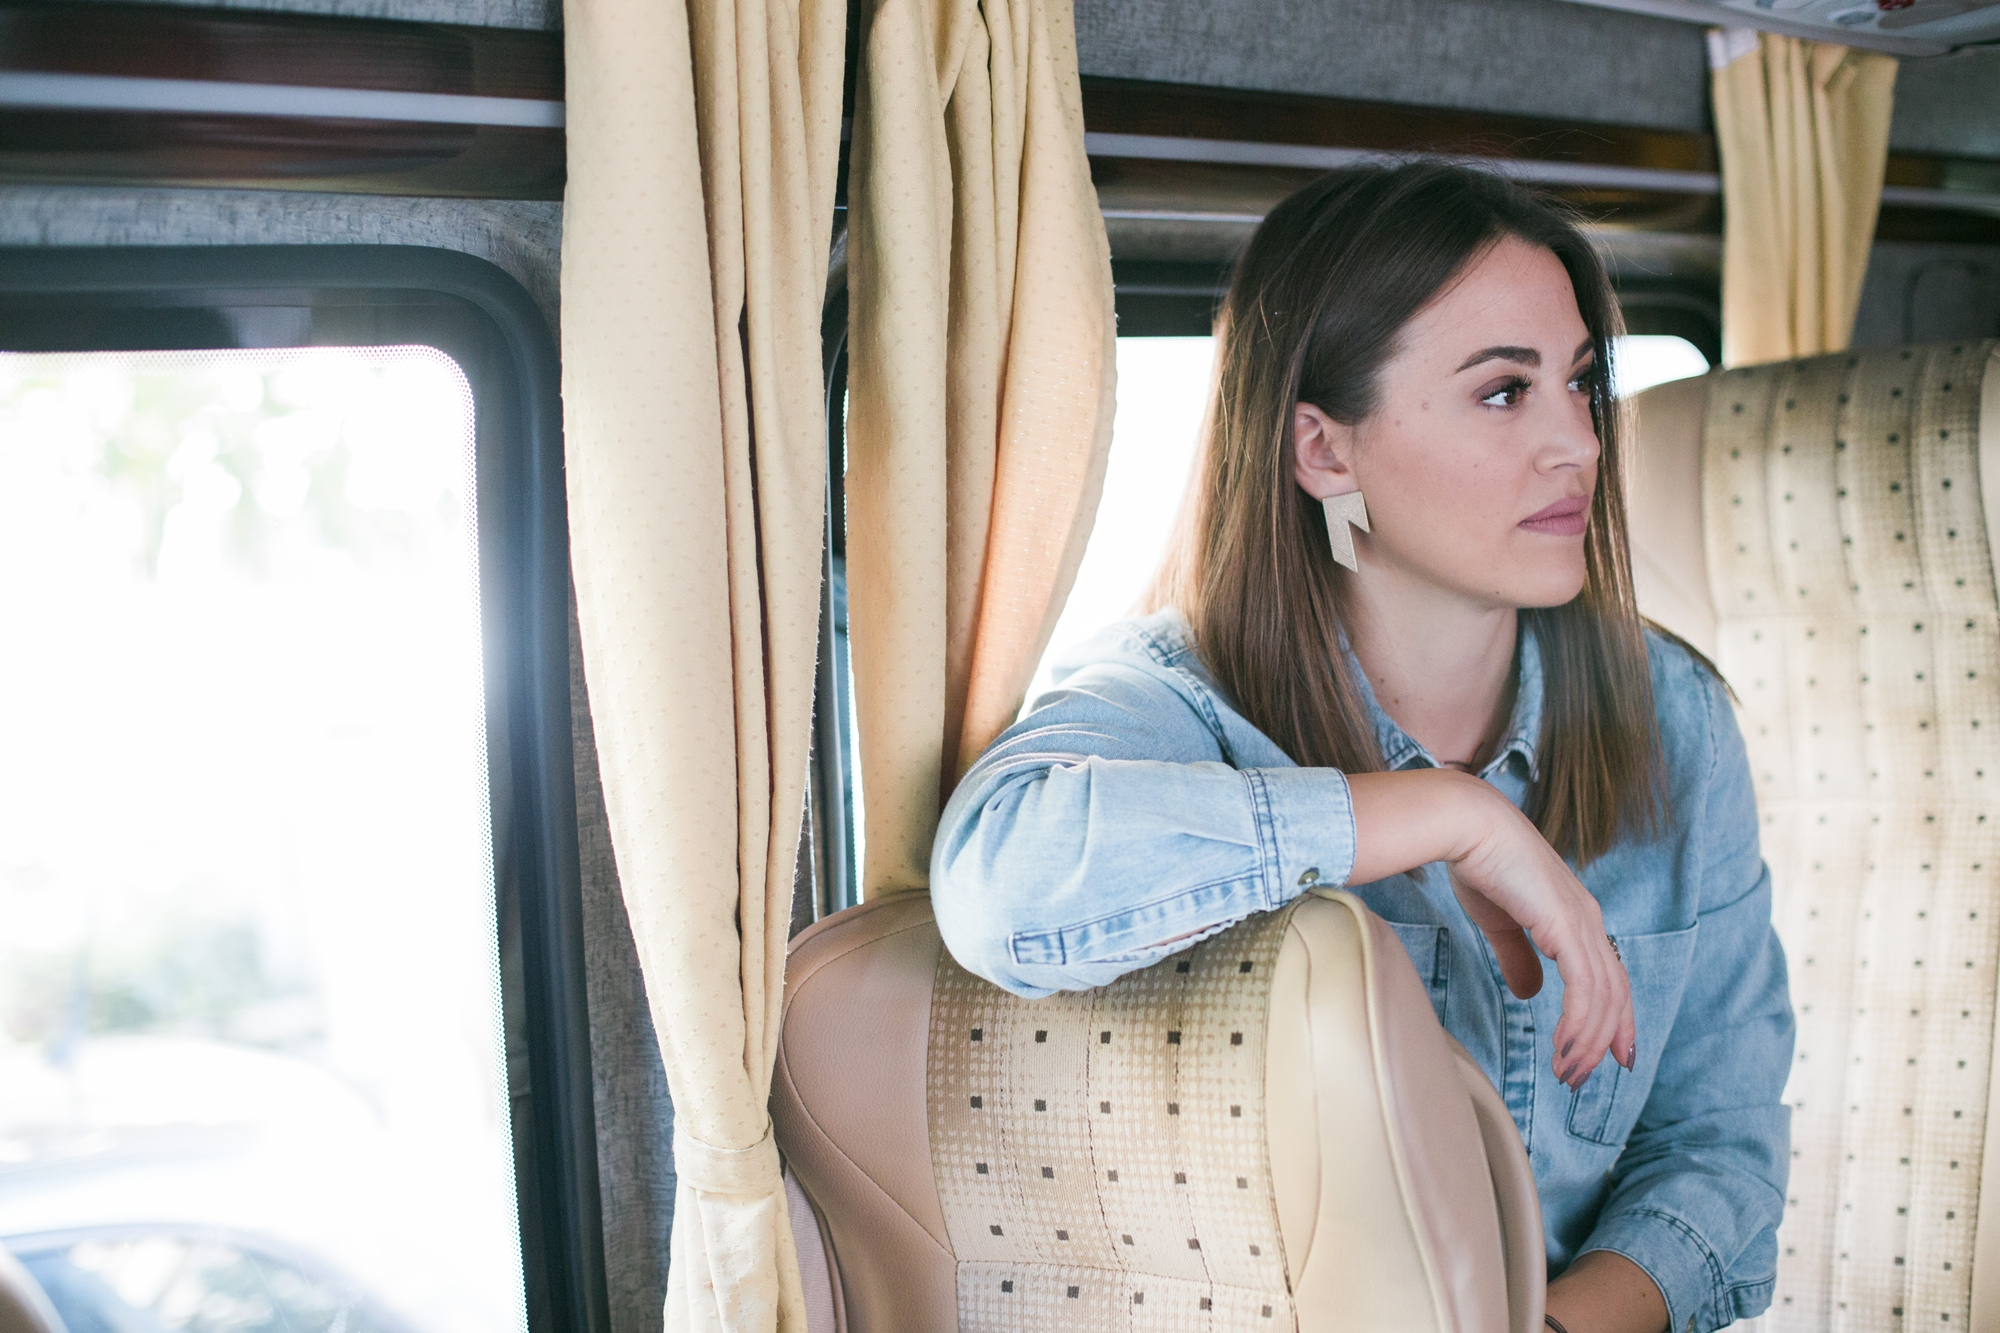 A Bachelorette bus for the most amazing bachelor parties